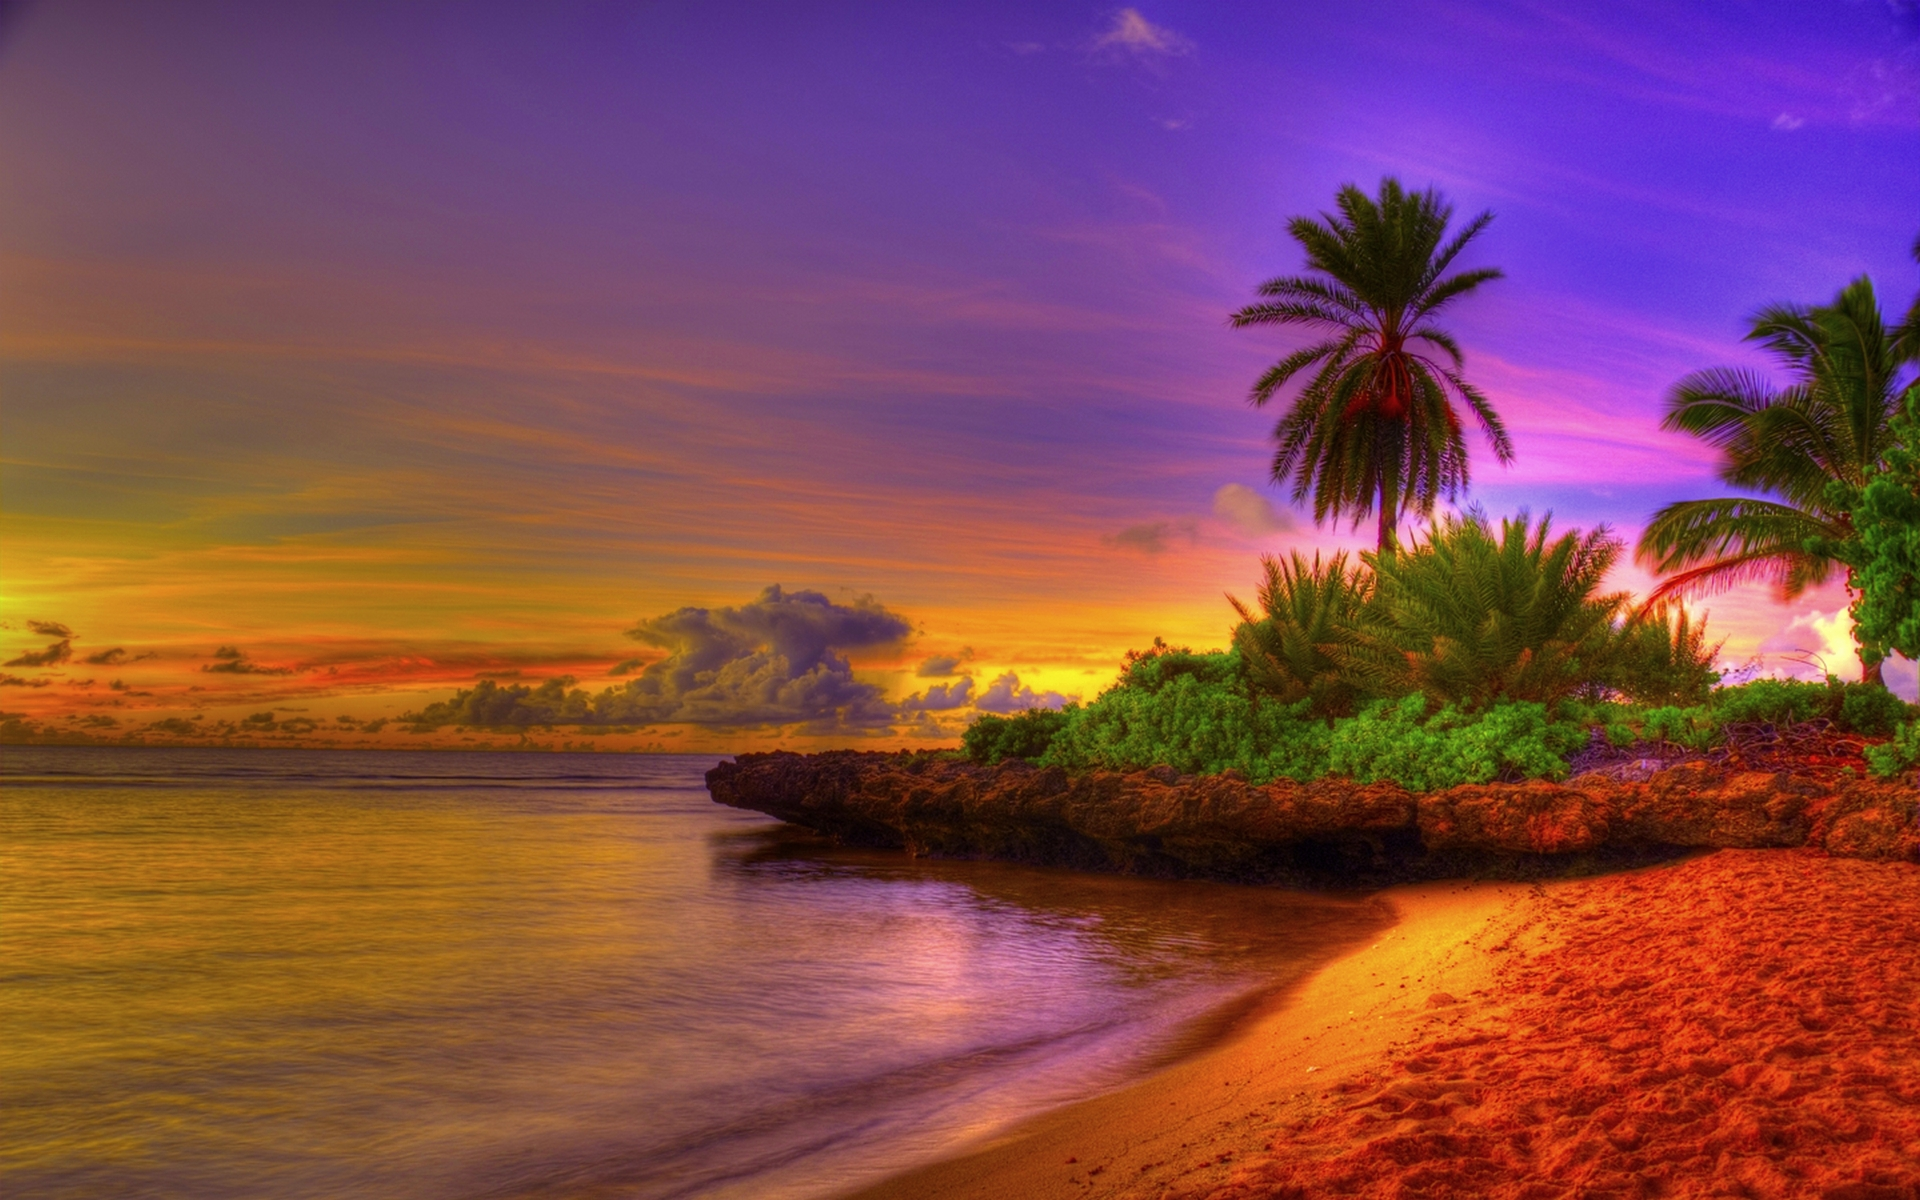 tropical beach image beautiful tropical beach sunset tropical beach 1920x1200